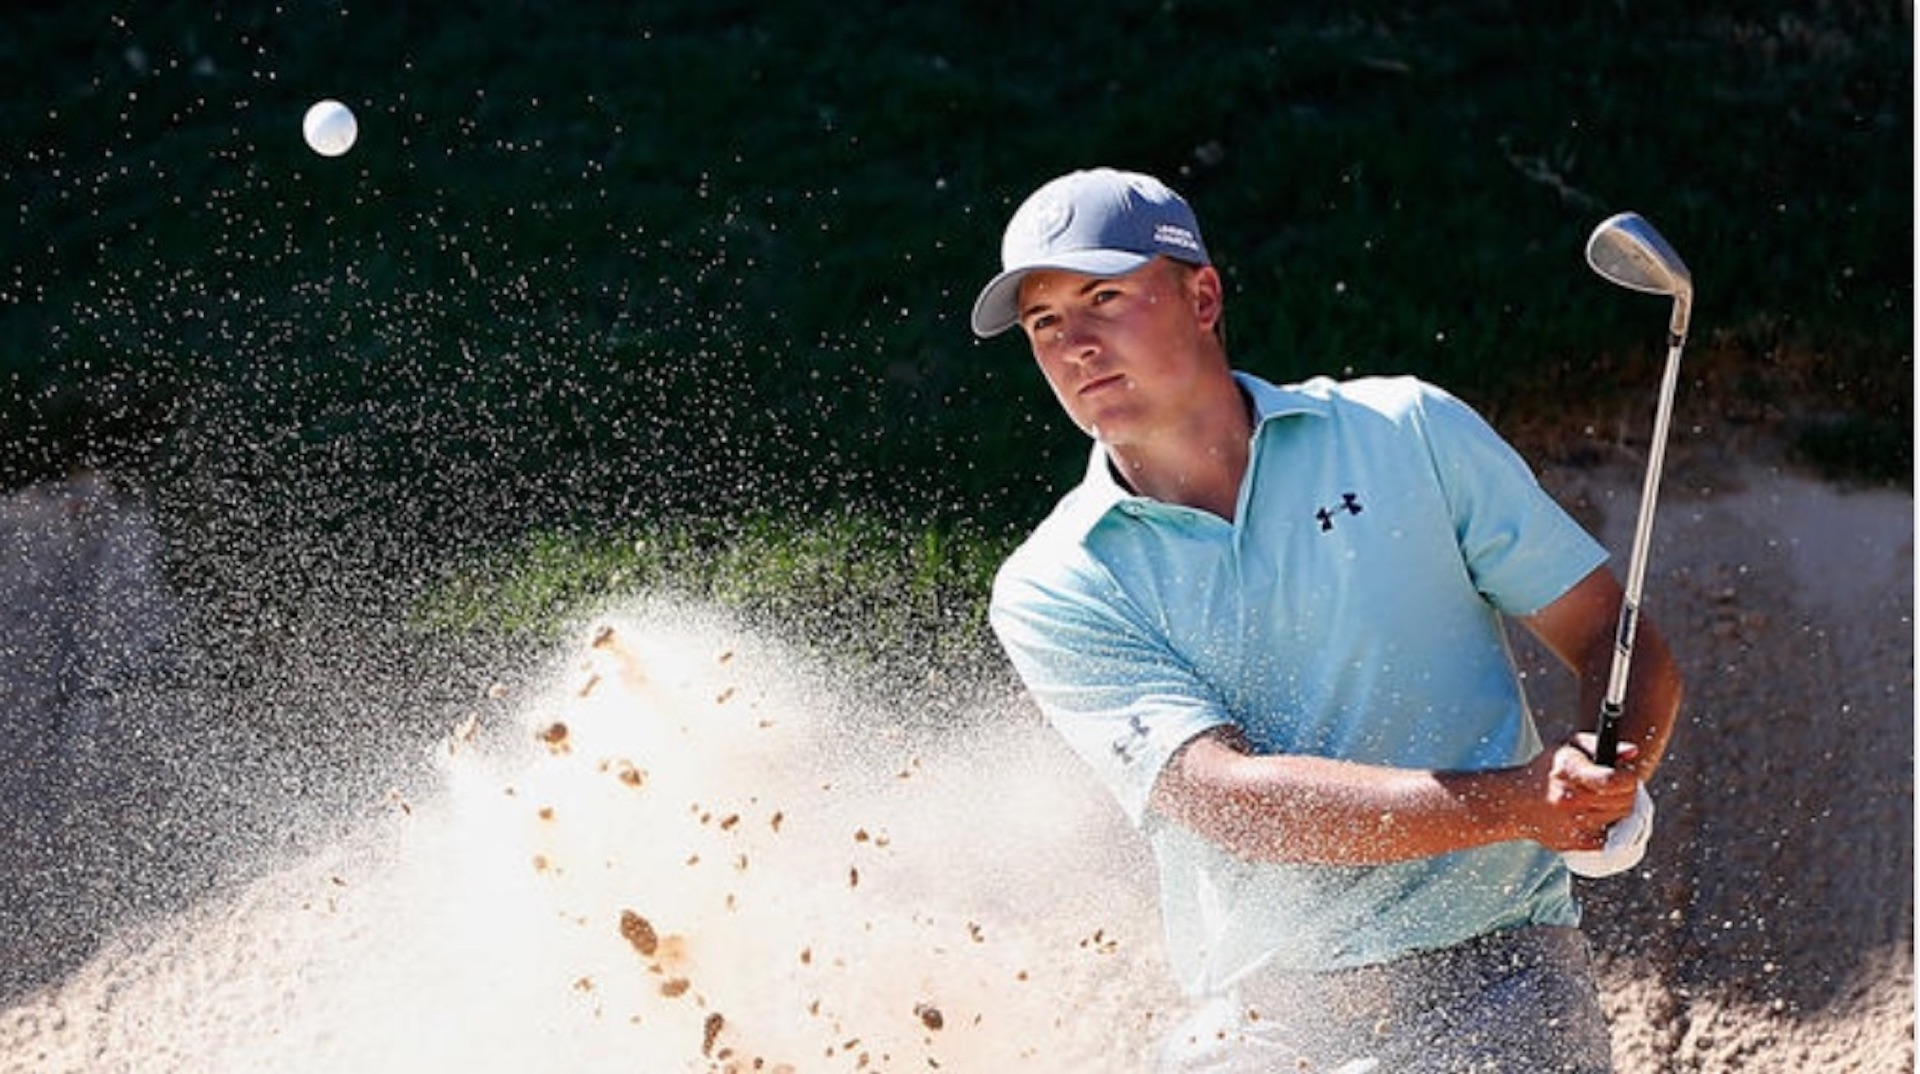 Jordan Spieth off to a flyer at the Travelers